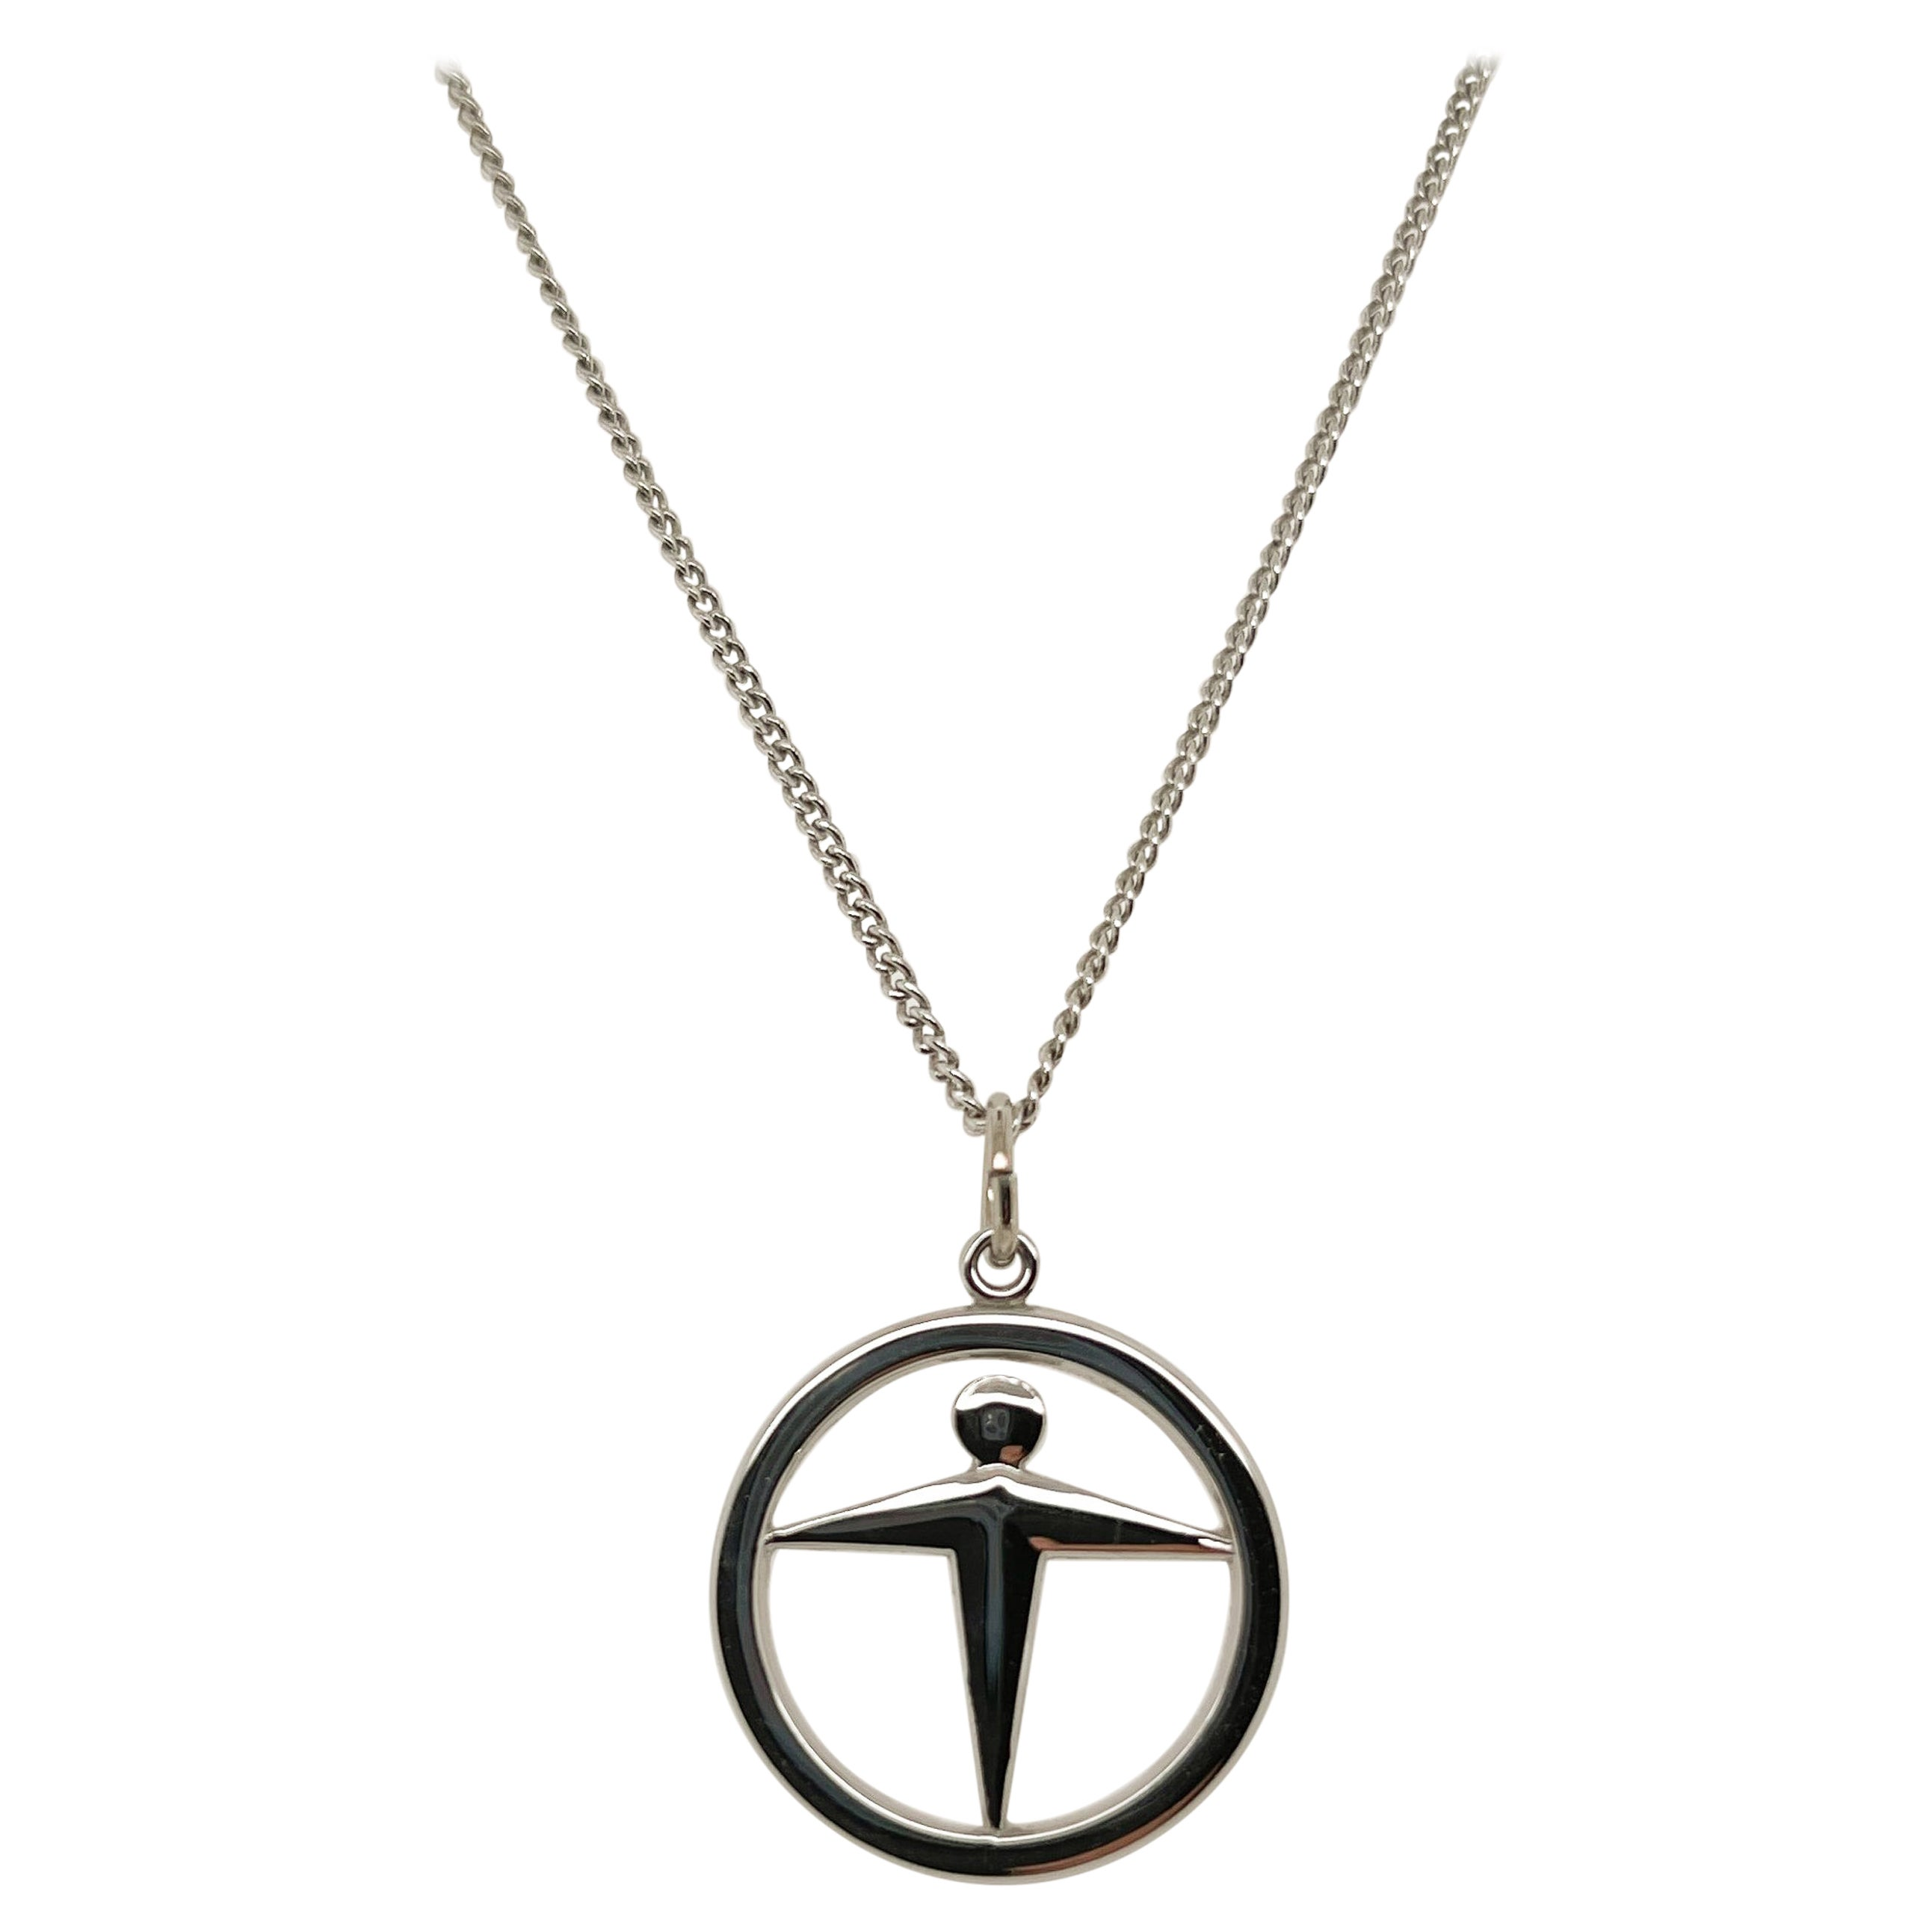 Vintage Signed Tiffany & Co. Manpower Sterling Silver Pendant Necklace